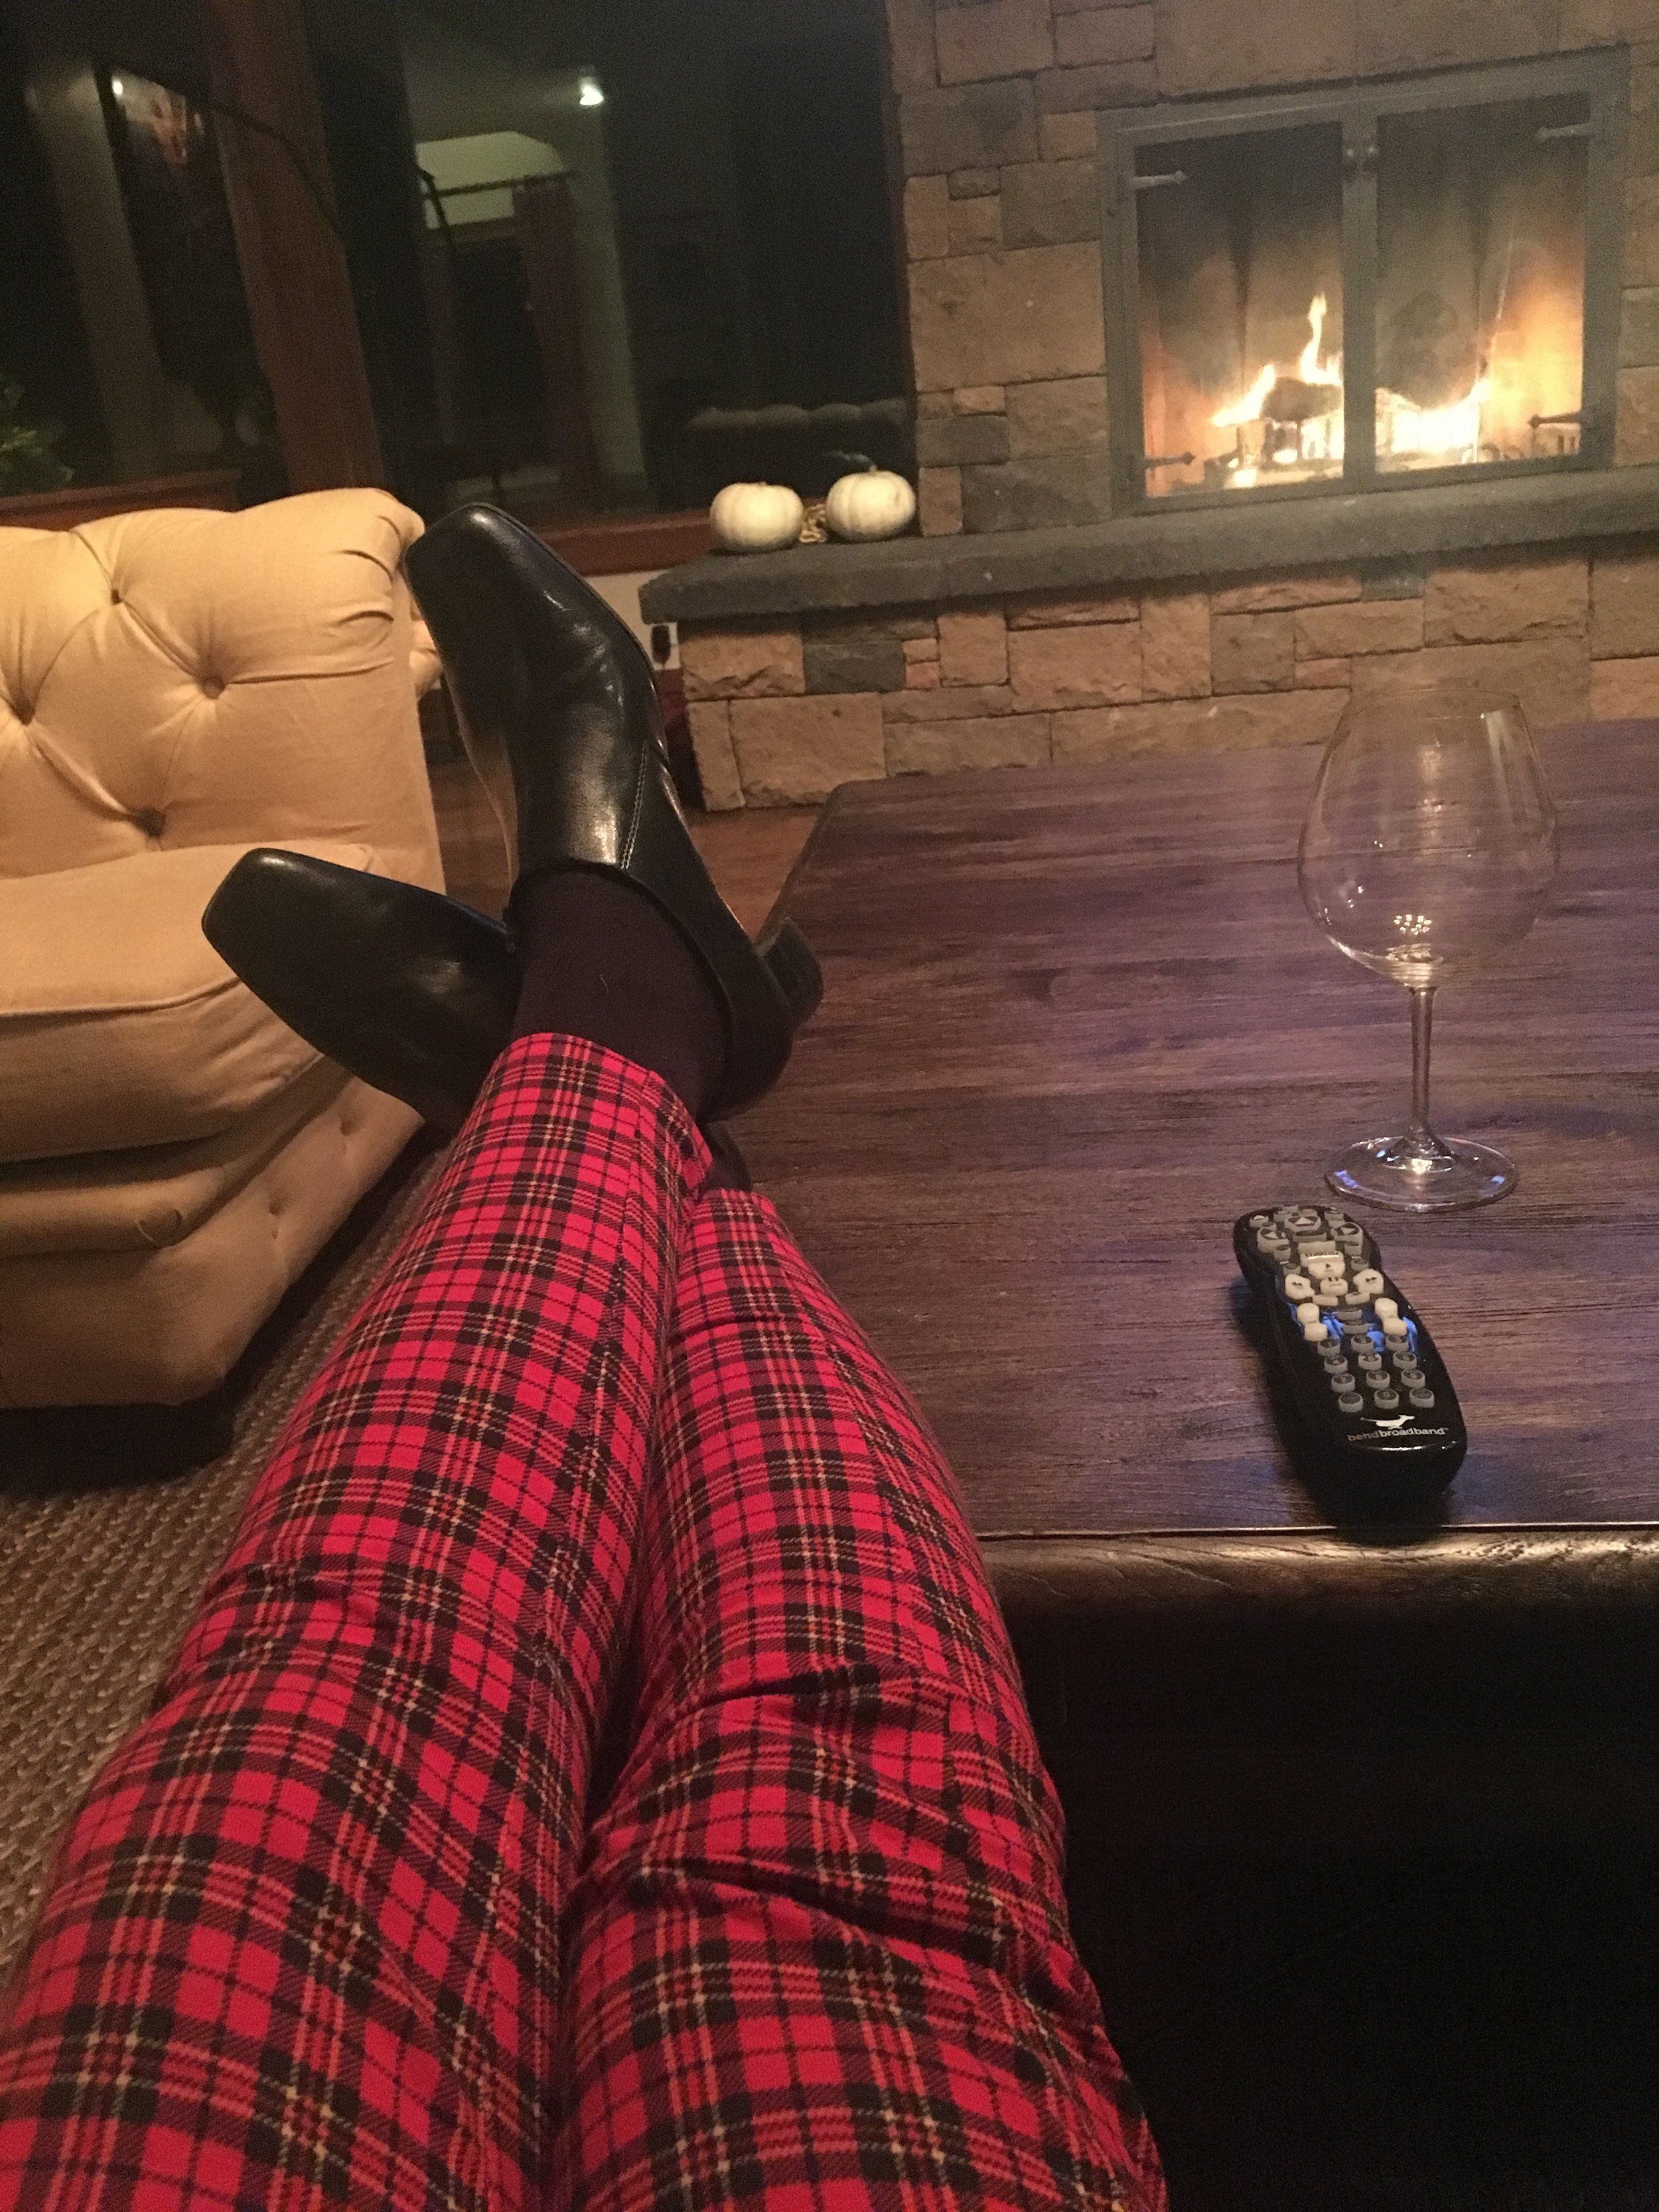 Next step, pour a nice glass of wine, grab your comfy blanket, light a candle and your favorite playlist!Put your feet up and get -READY TO RECEIVE -